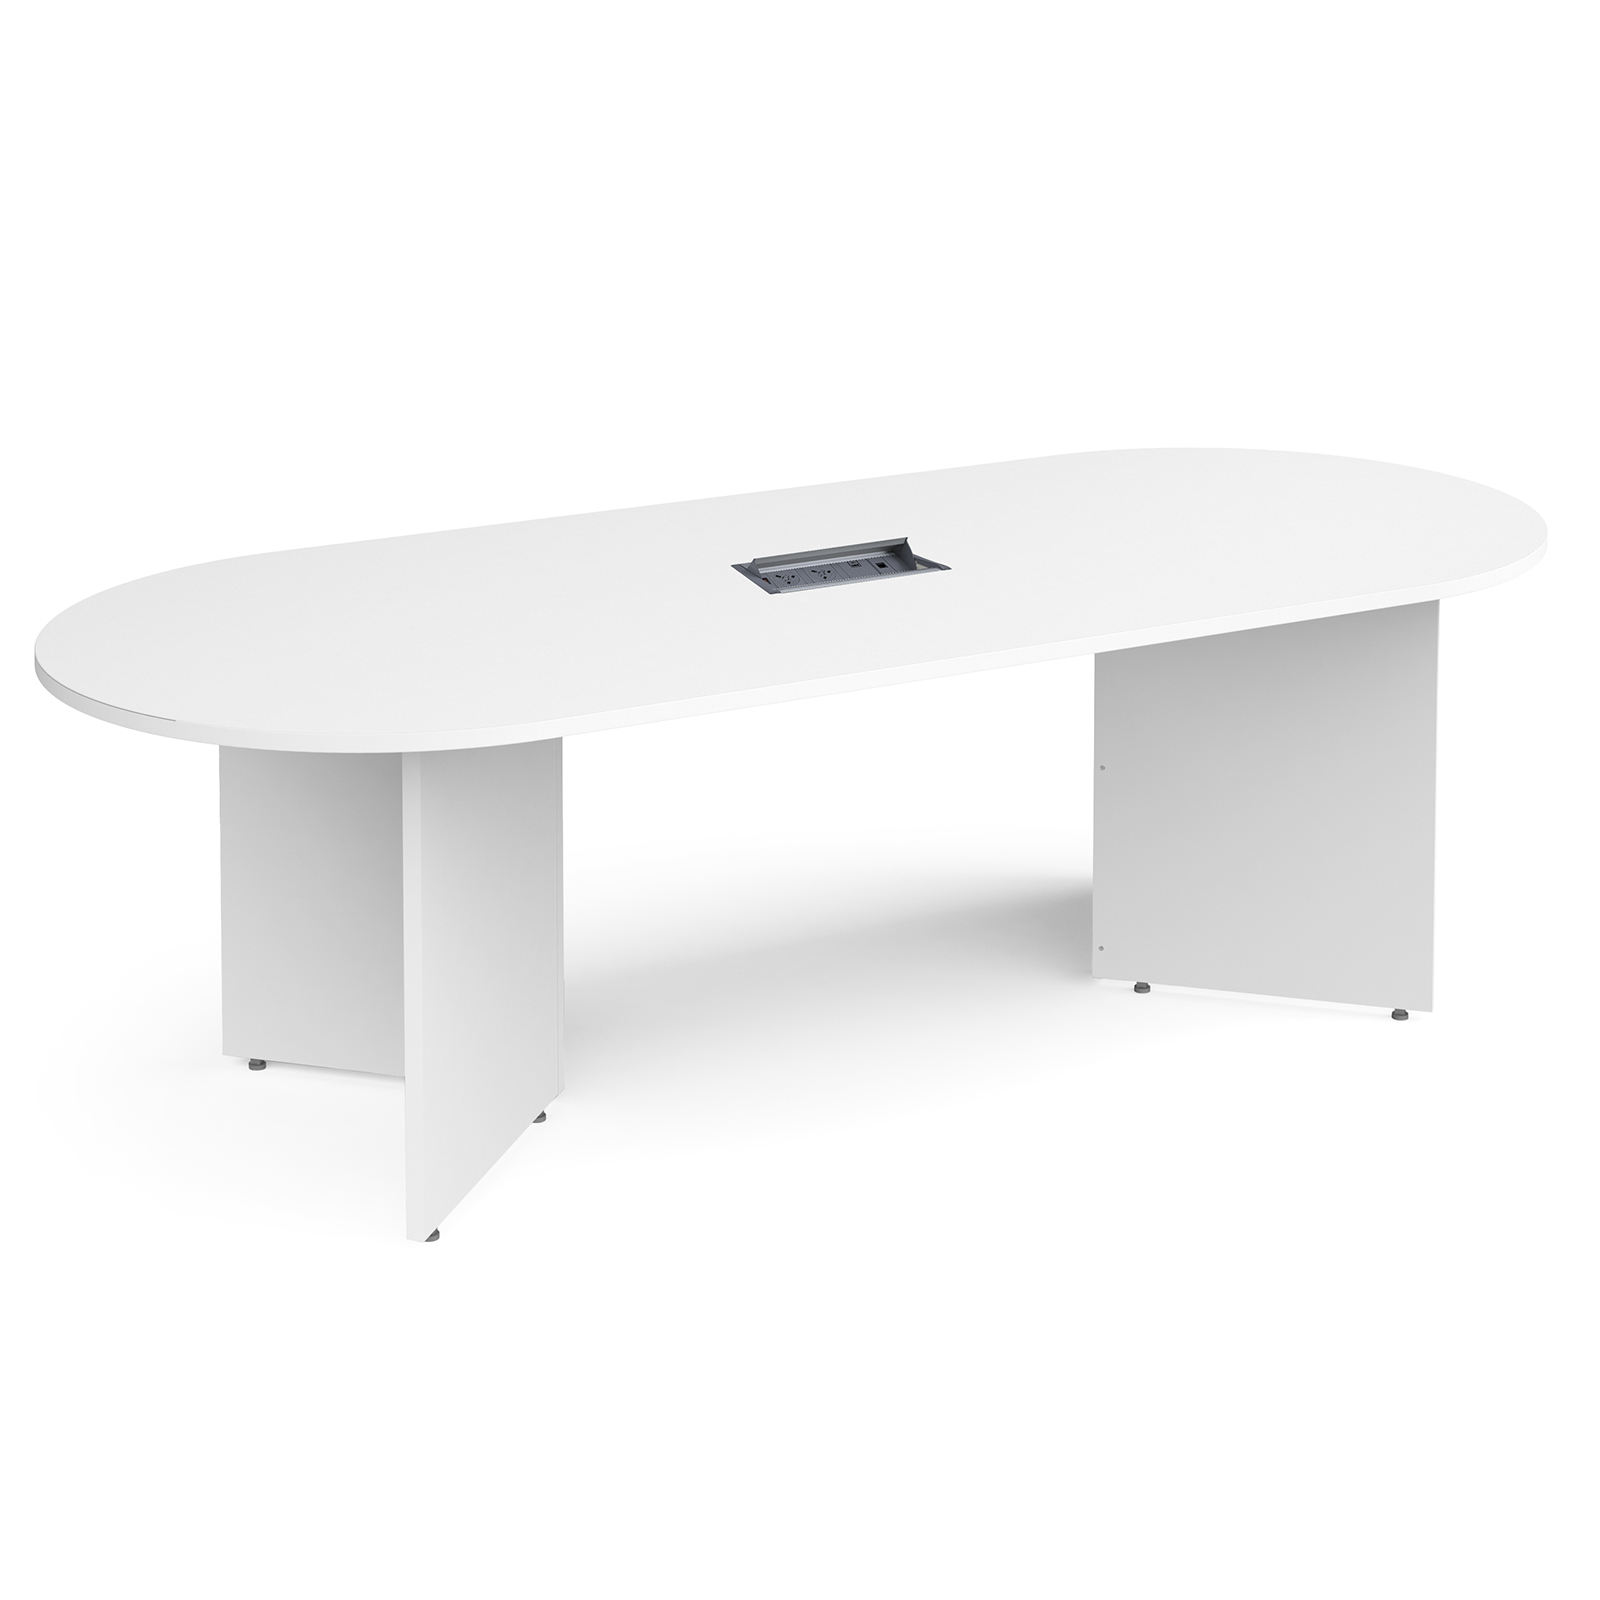 Boardroom / Meeting Arrow head leg radial end boardroom table 2400mm x 1000mm in white with central cutout and Aero power module